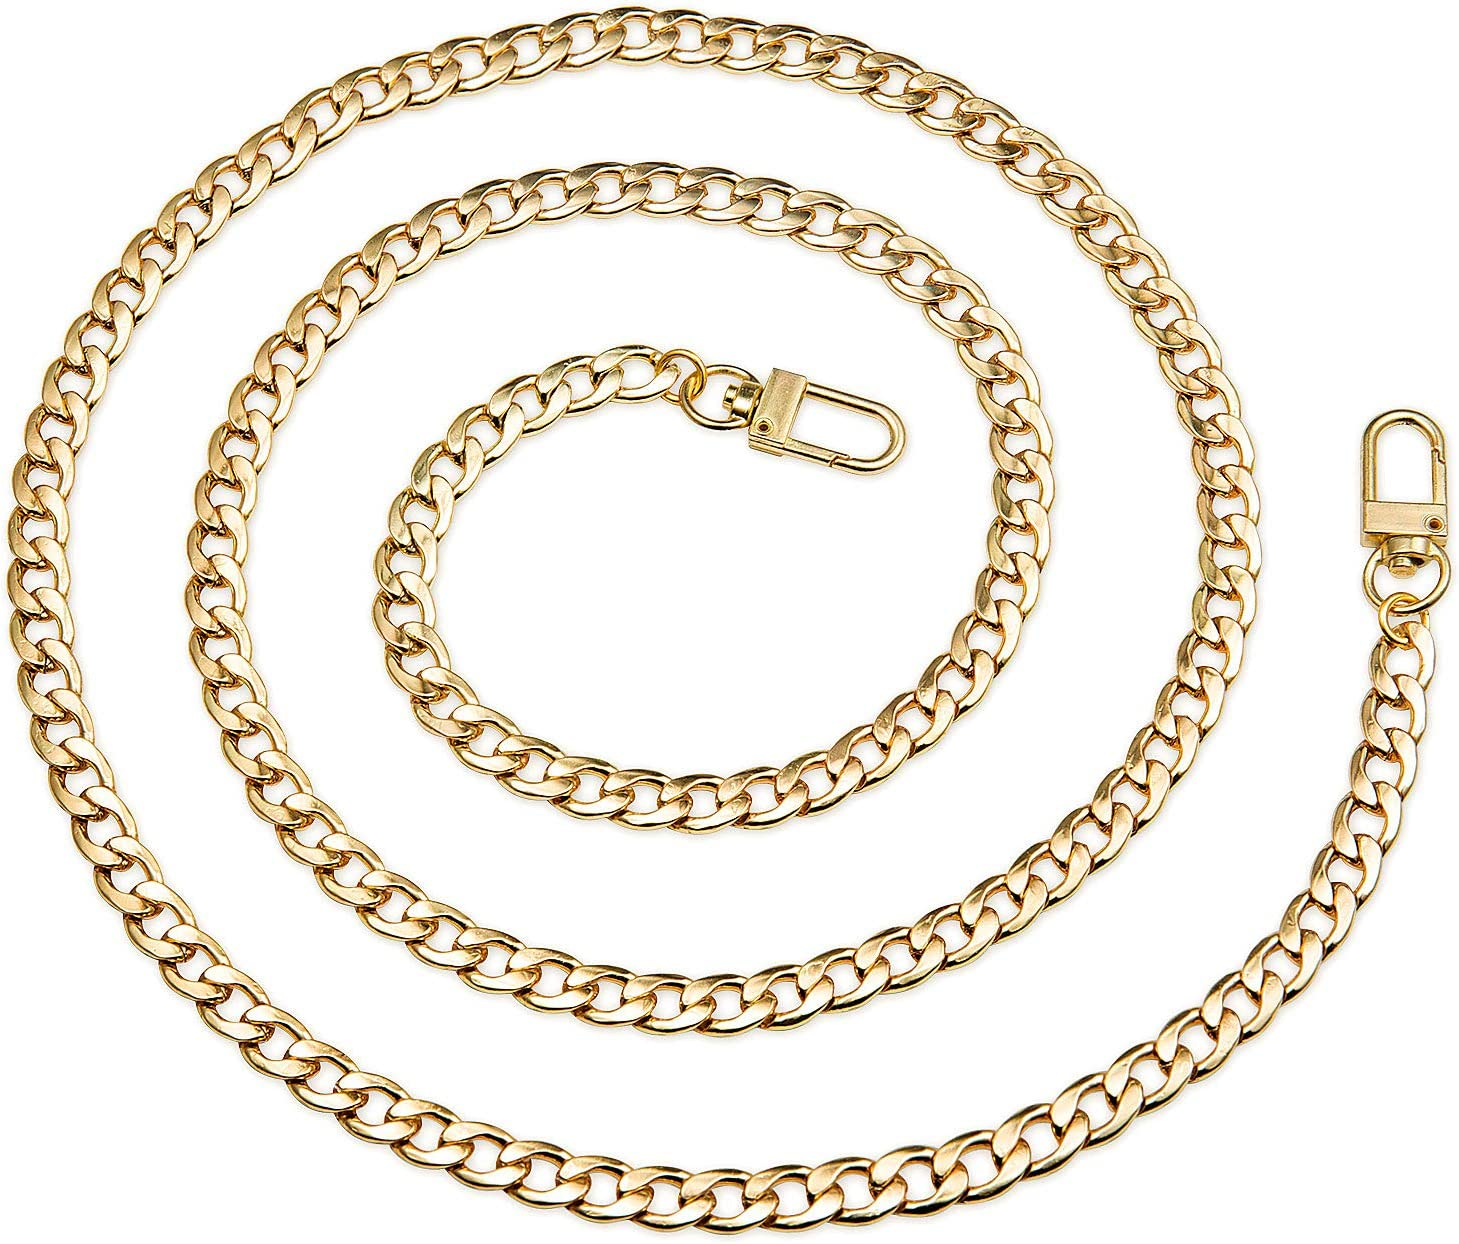 SimpleLif DIY Handbag Chain Purse Bag Strap Cross Body Replacement Straps Metal Chain with Buckles